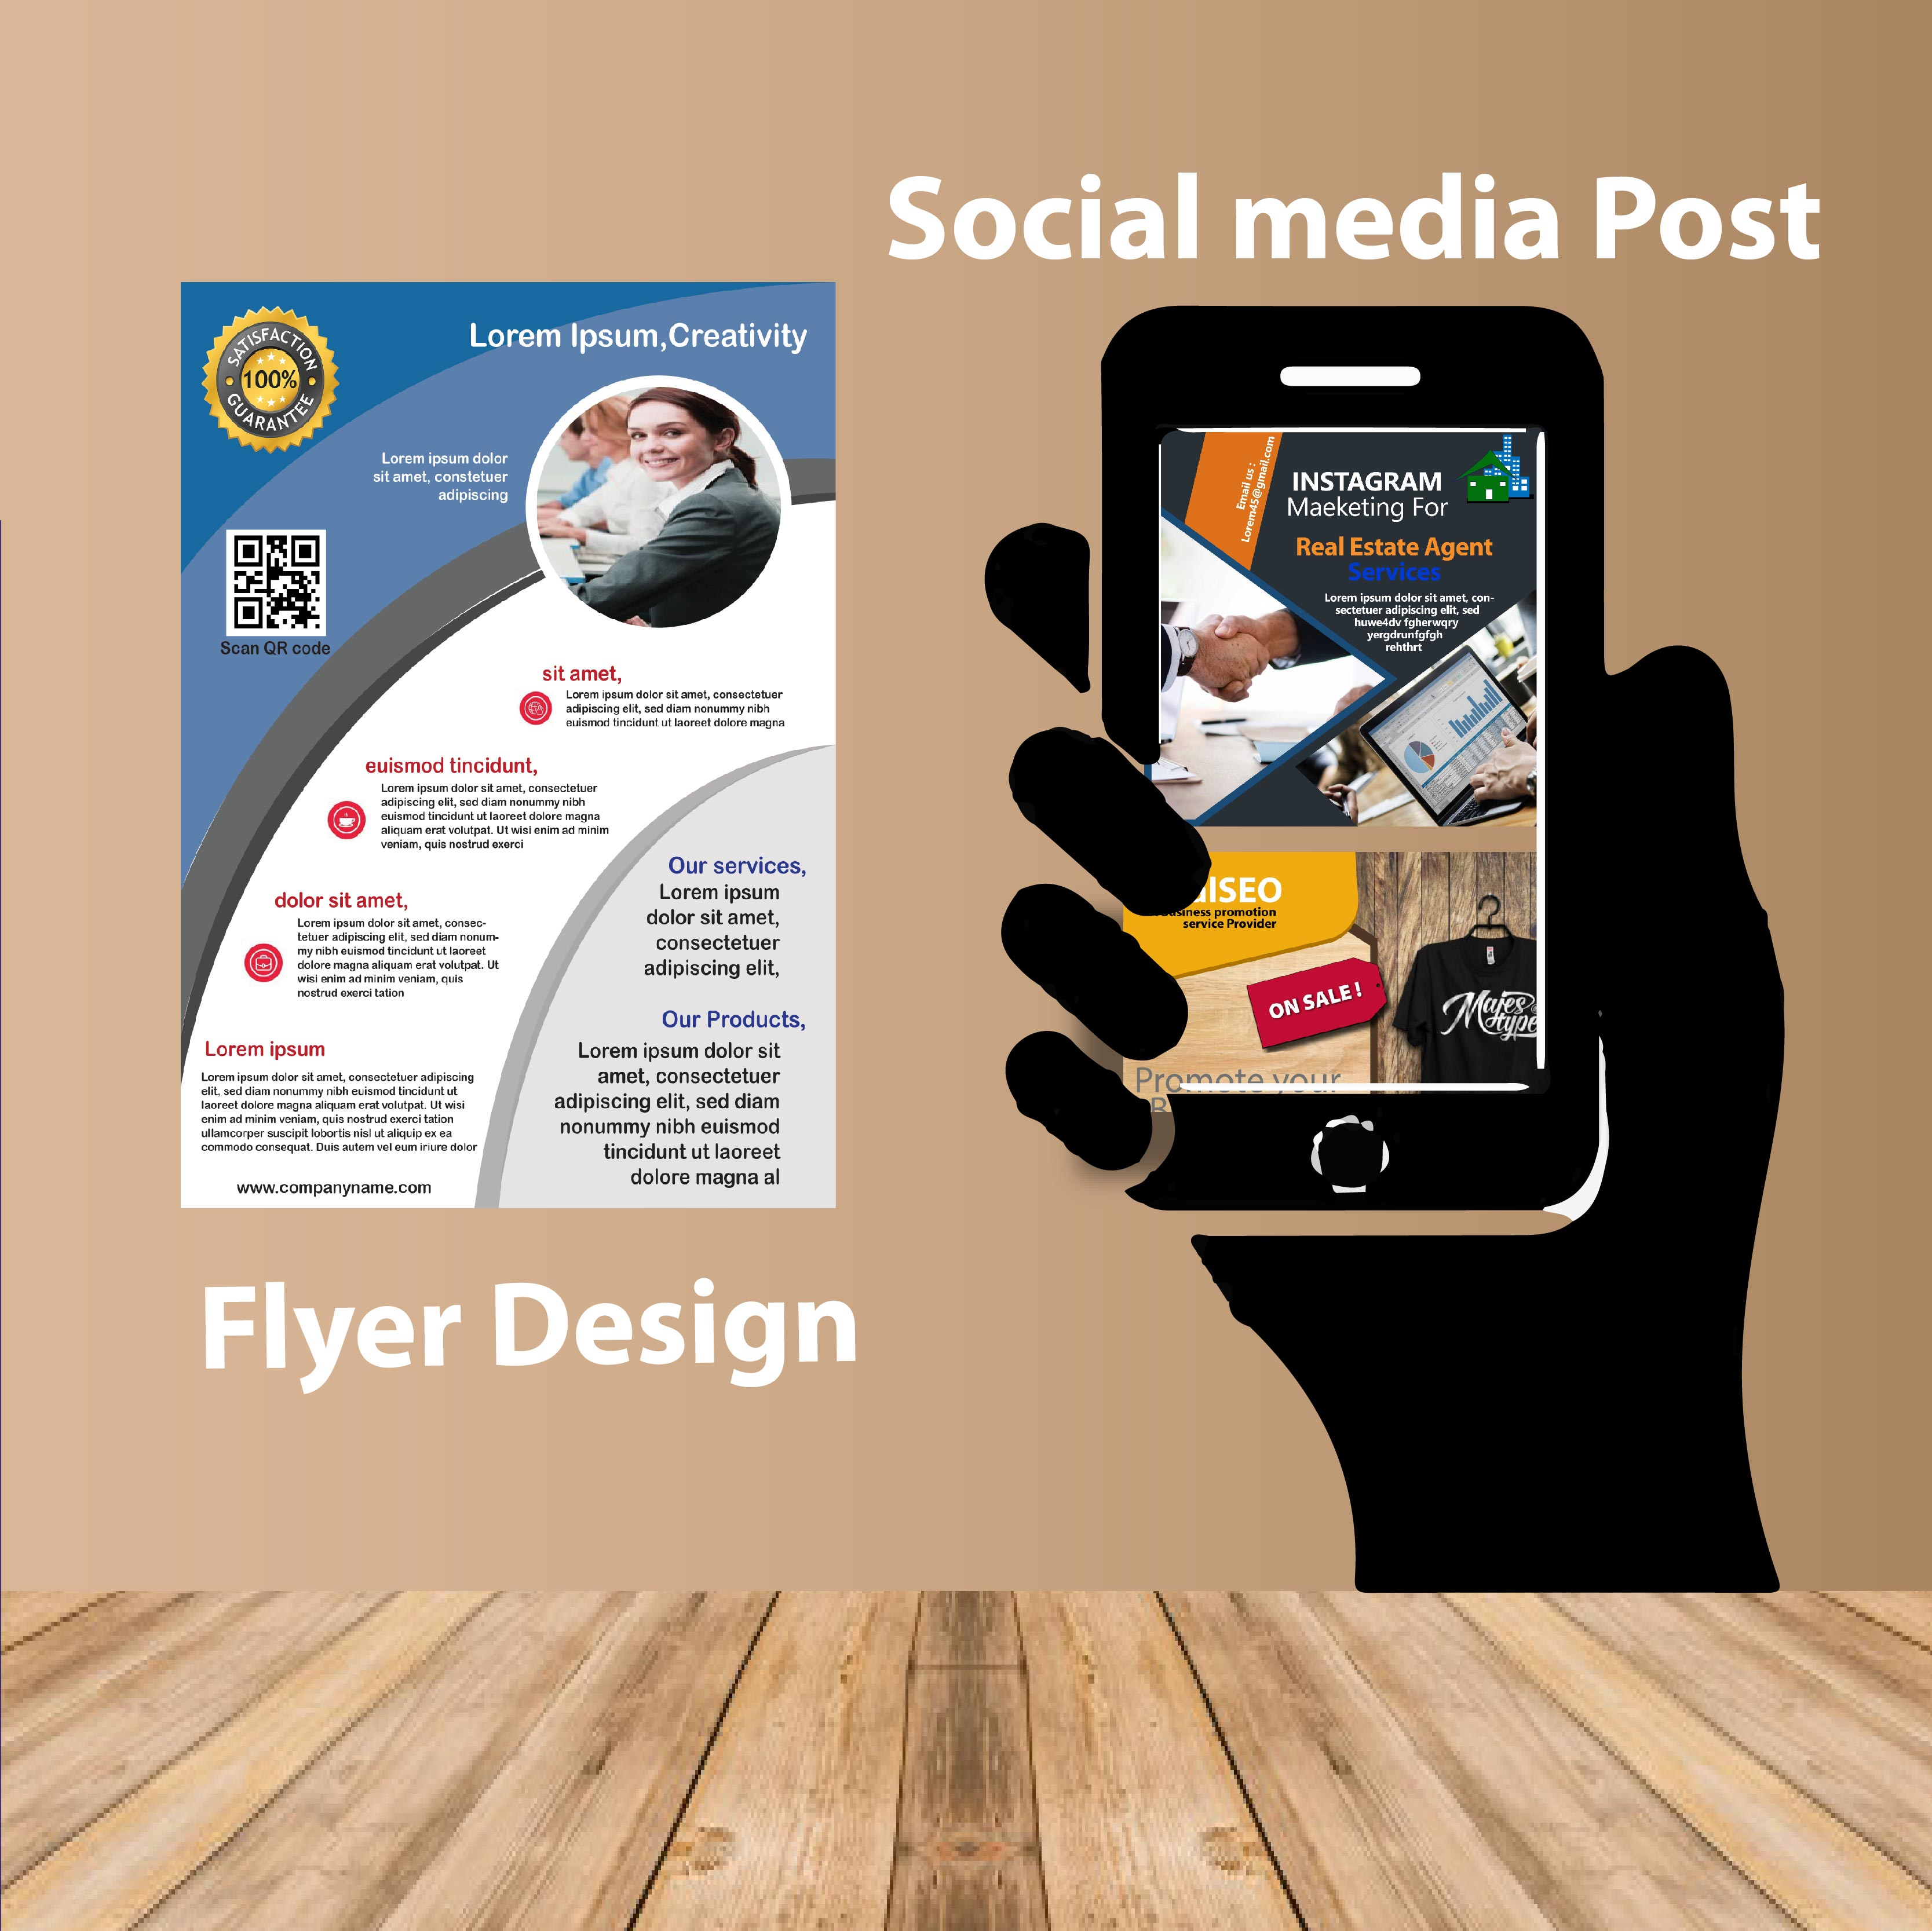 I will design social media post and flyer for you